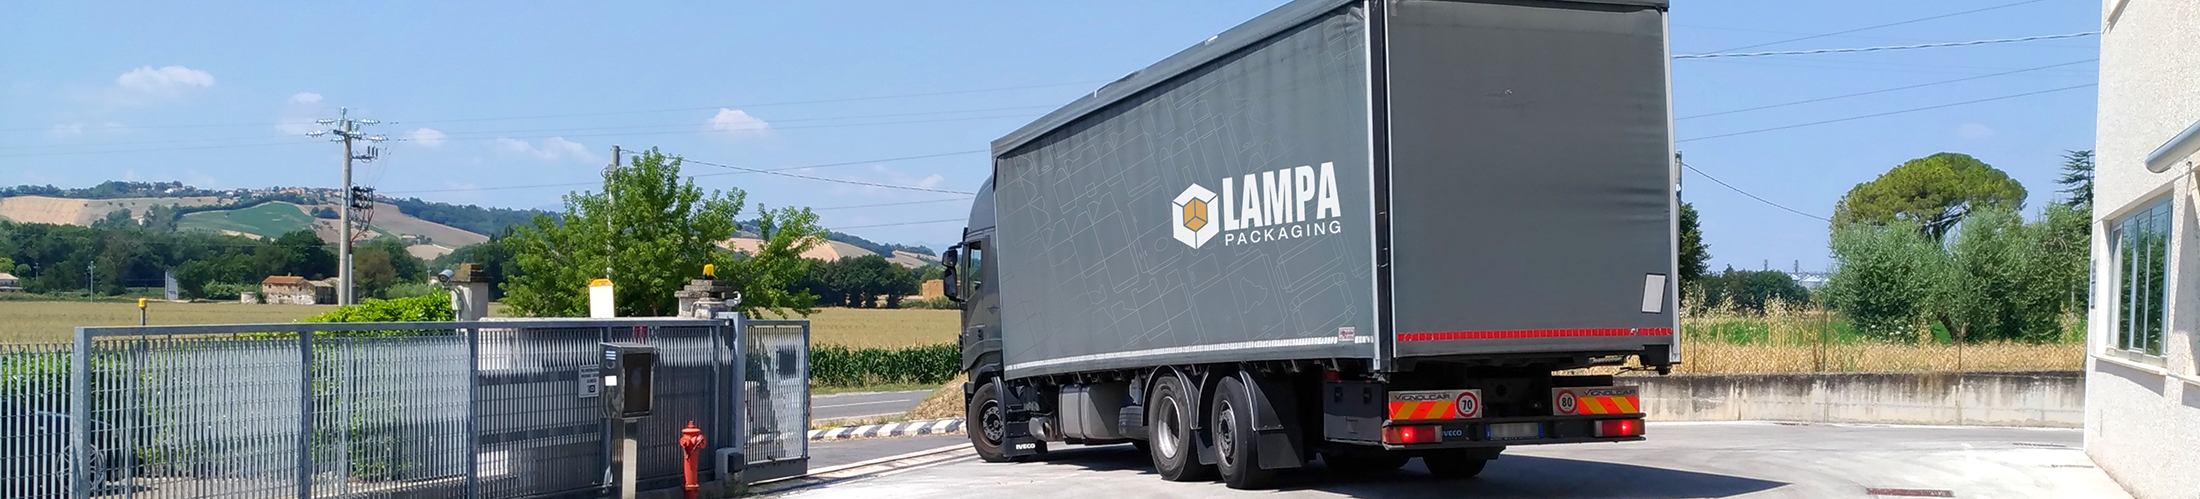 lampa_packaging_logistica_2200x500